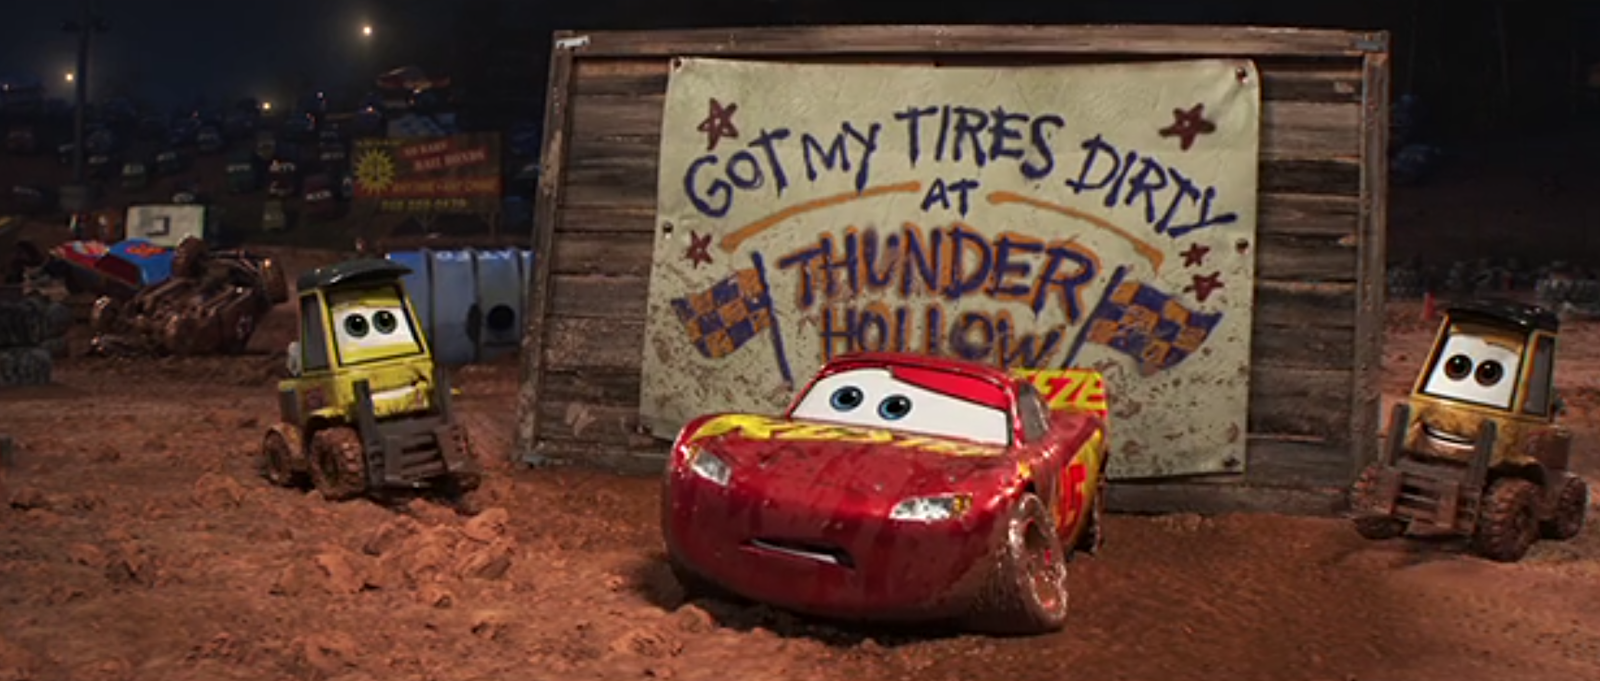 Dan The Pixar Fan Cars 3 Muddy Rust Eze Racing Center Lightning